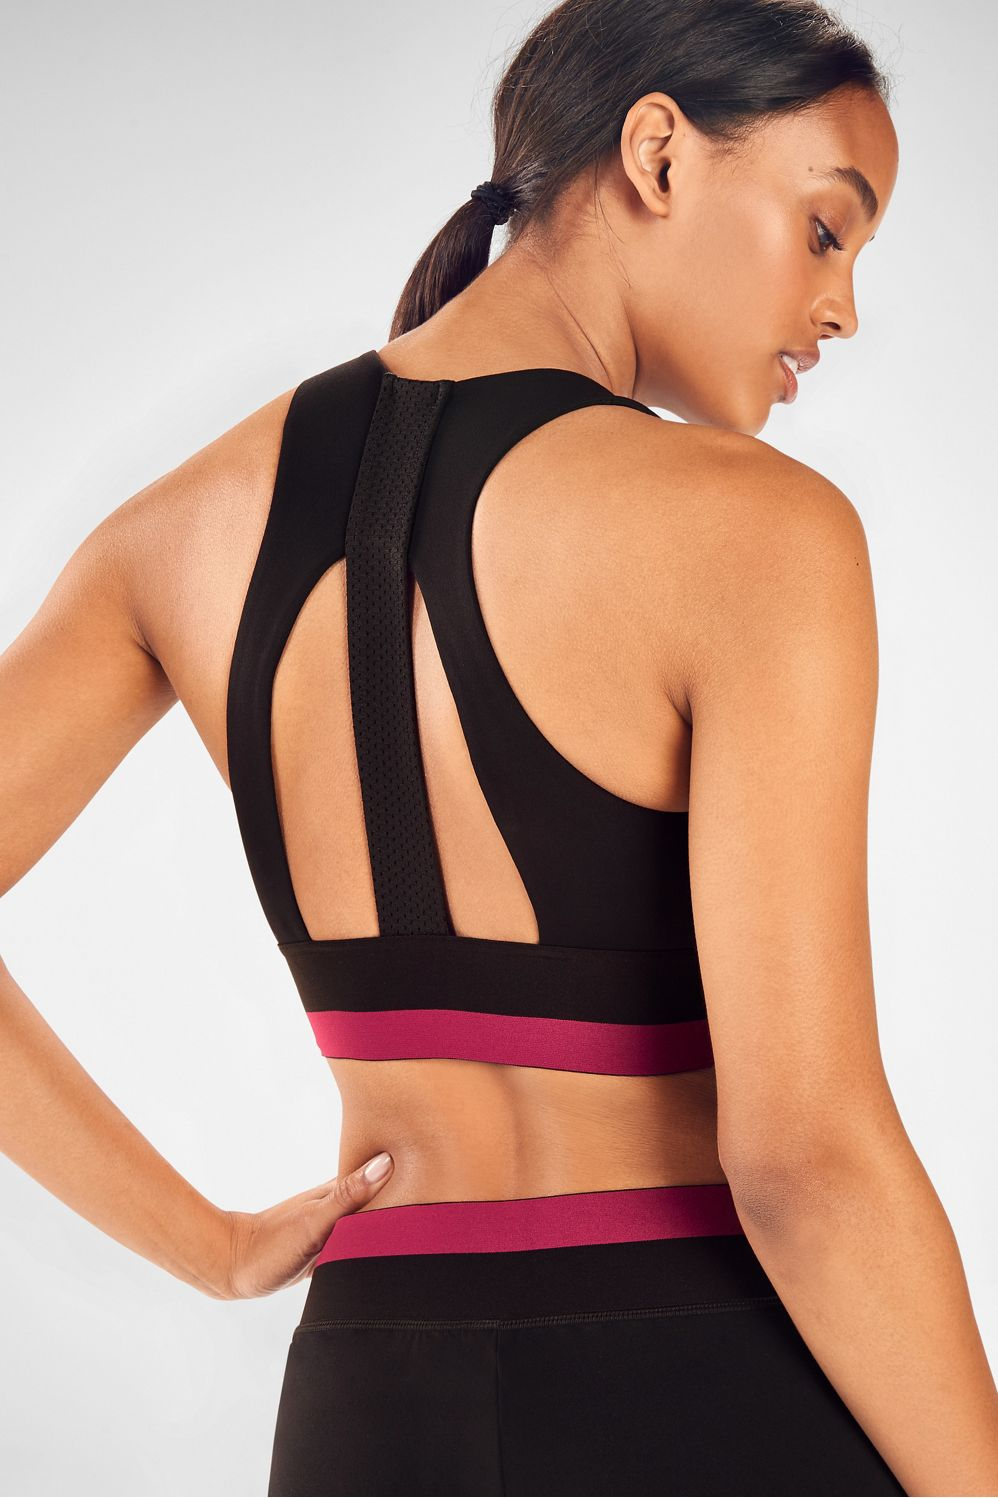 New to the colorblock is our fashionable, medium-support sports bra, designed with a contrast bottom band, cool cutouts in back and all the technology your top half needs.